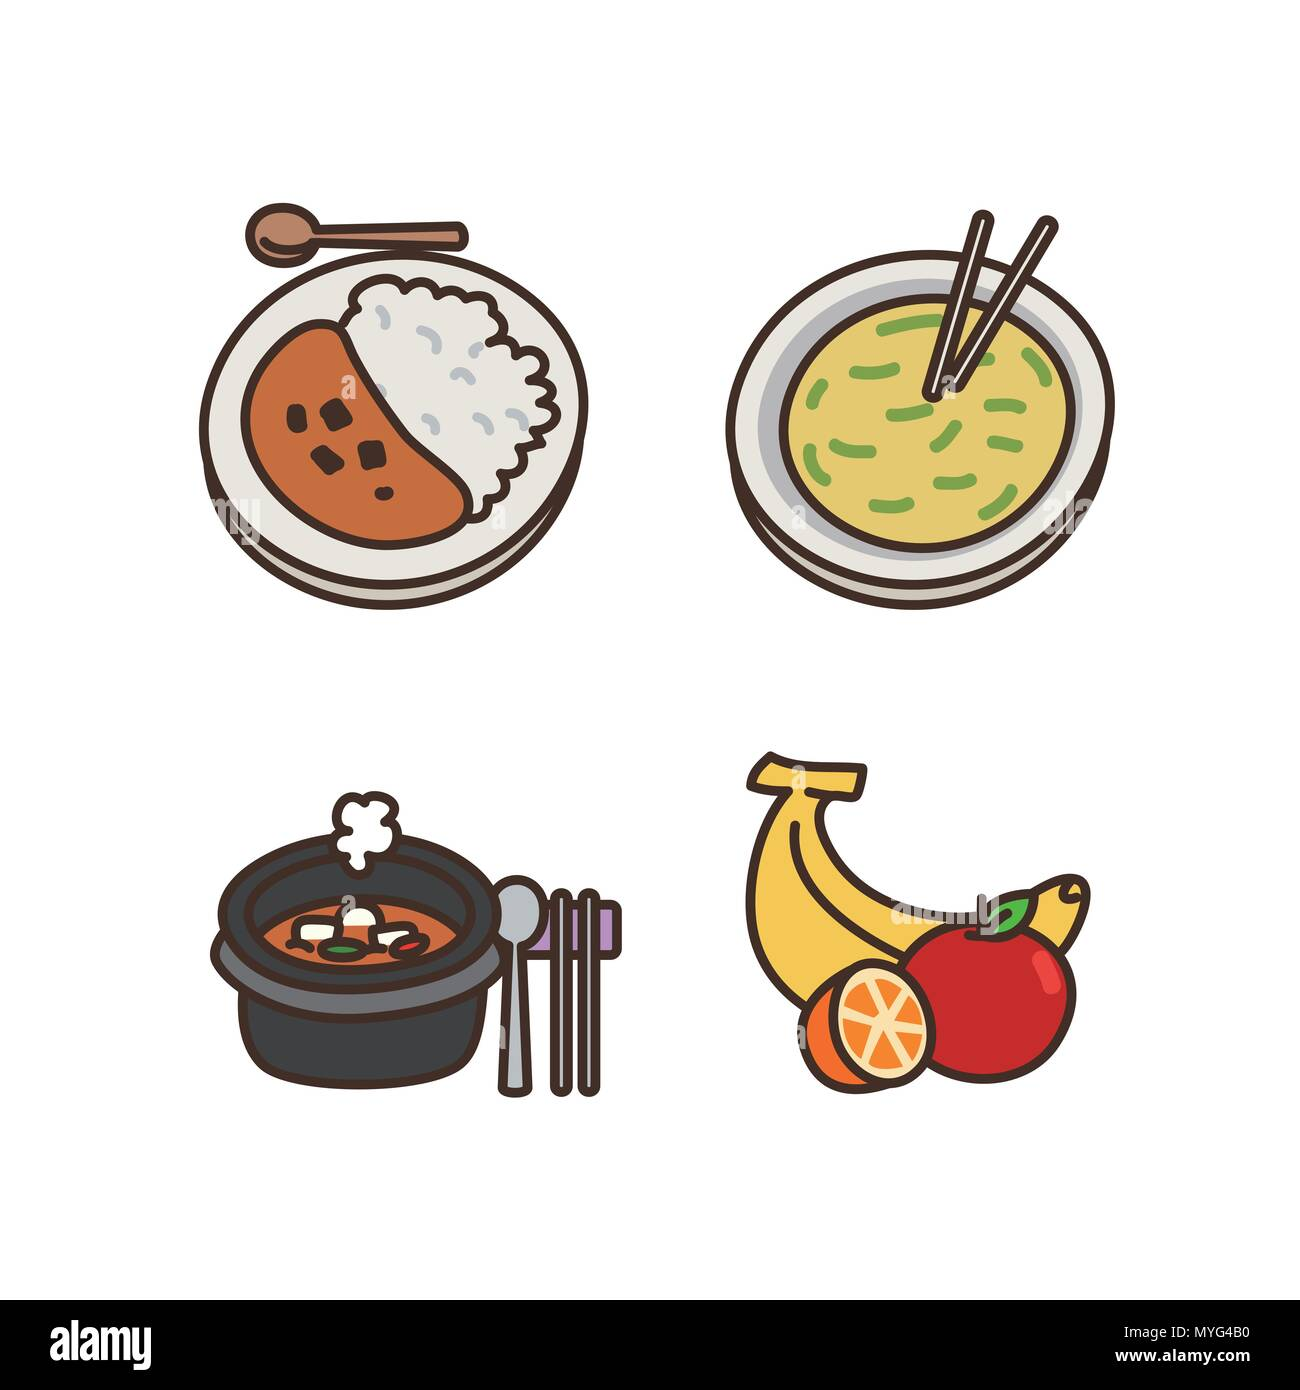 Vector - Related to life and daily flat icon set.047 - Stock Vector